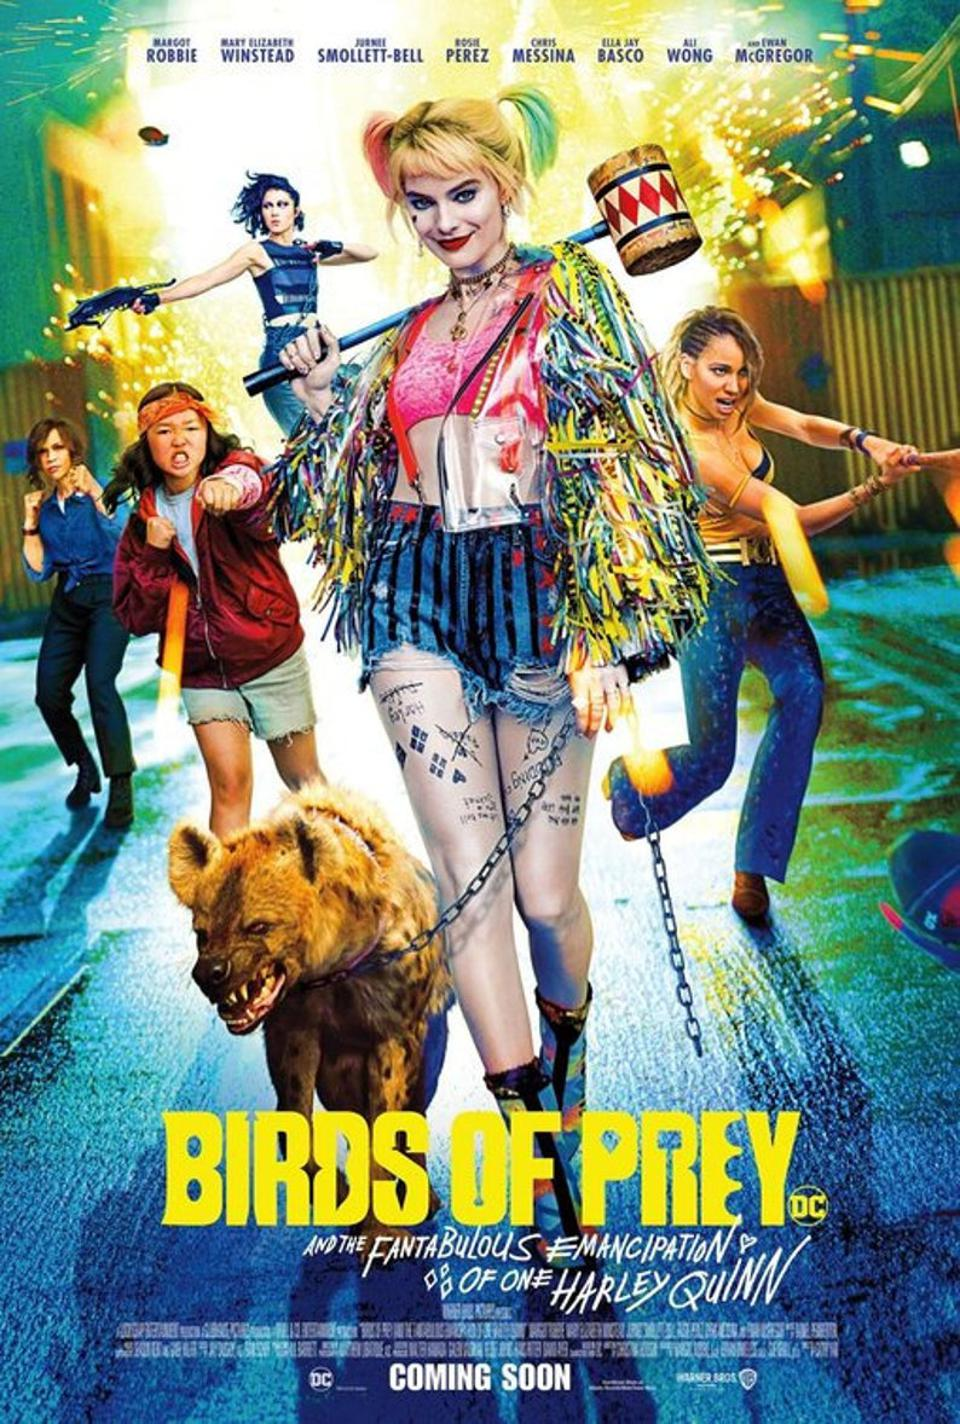 Birds Of Prey Marketing Is Not To Blame For Disappointing Box Office